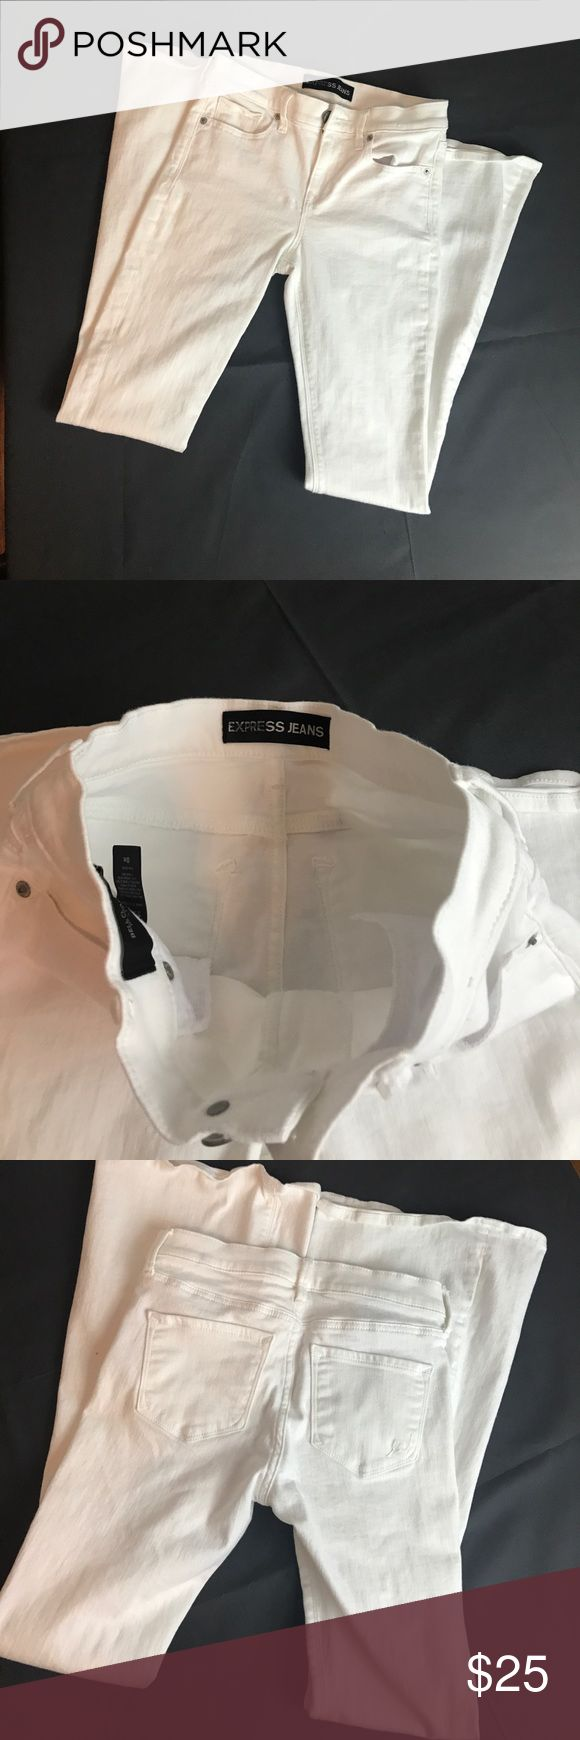 """Express Bell Flare Mid Rise White Jeans Super soft size 0R. 98% cotton 2% spandex. Length is app42"""". Inseam is app 31"""" Express Jeans Flare & Wide Leg"""